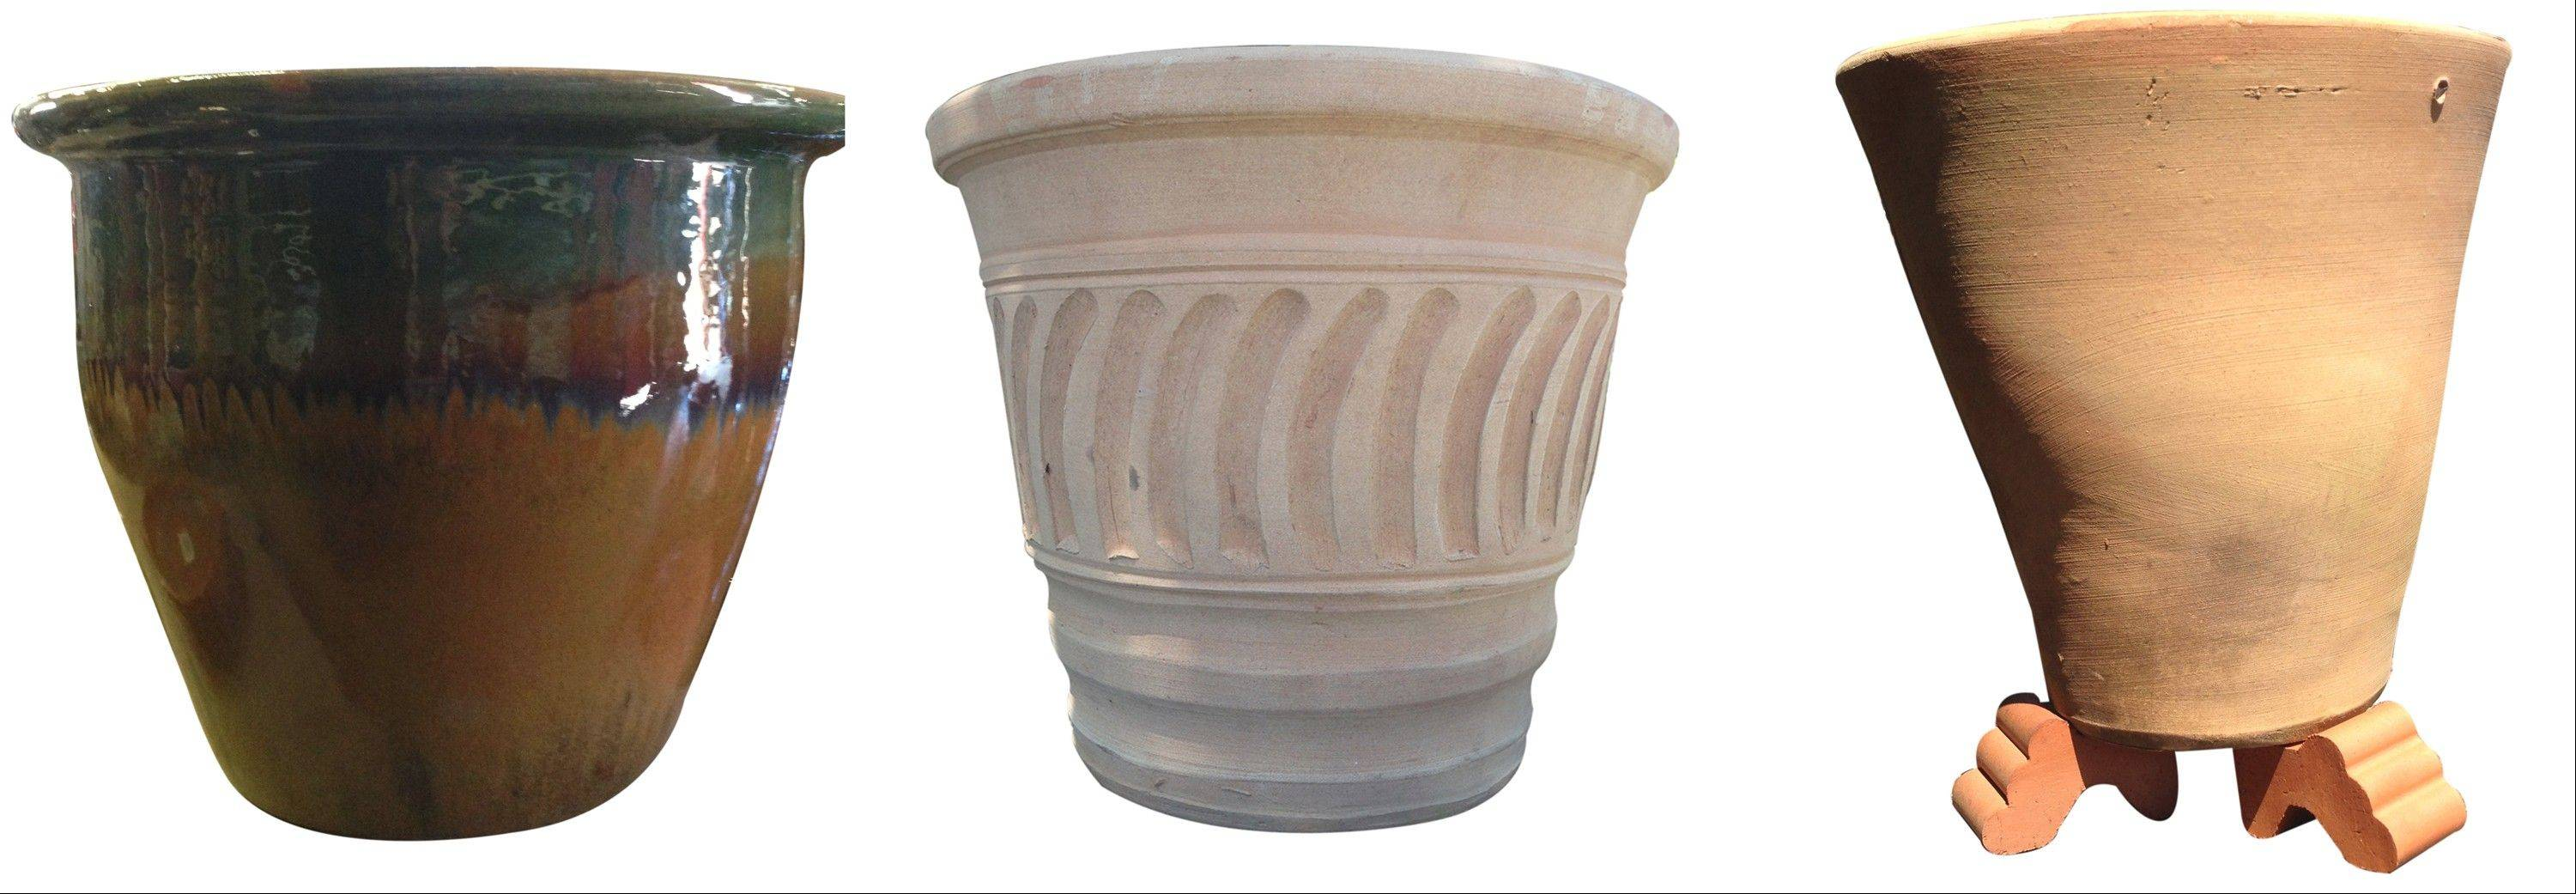 From left, a Savannah Brown ceramic pot; a fluted terra cotta pot, and a pot with clay �feet� which can aid drainage, especially when pots sit directly on paving.